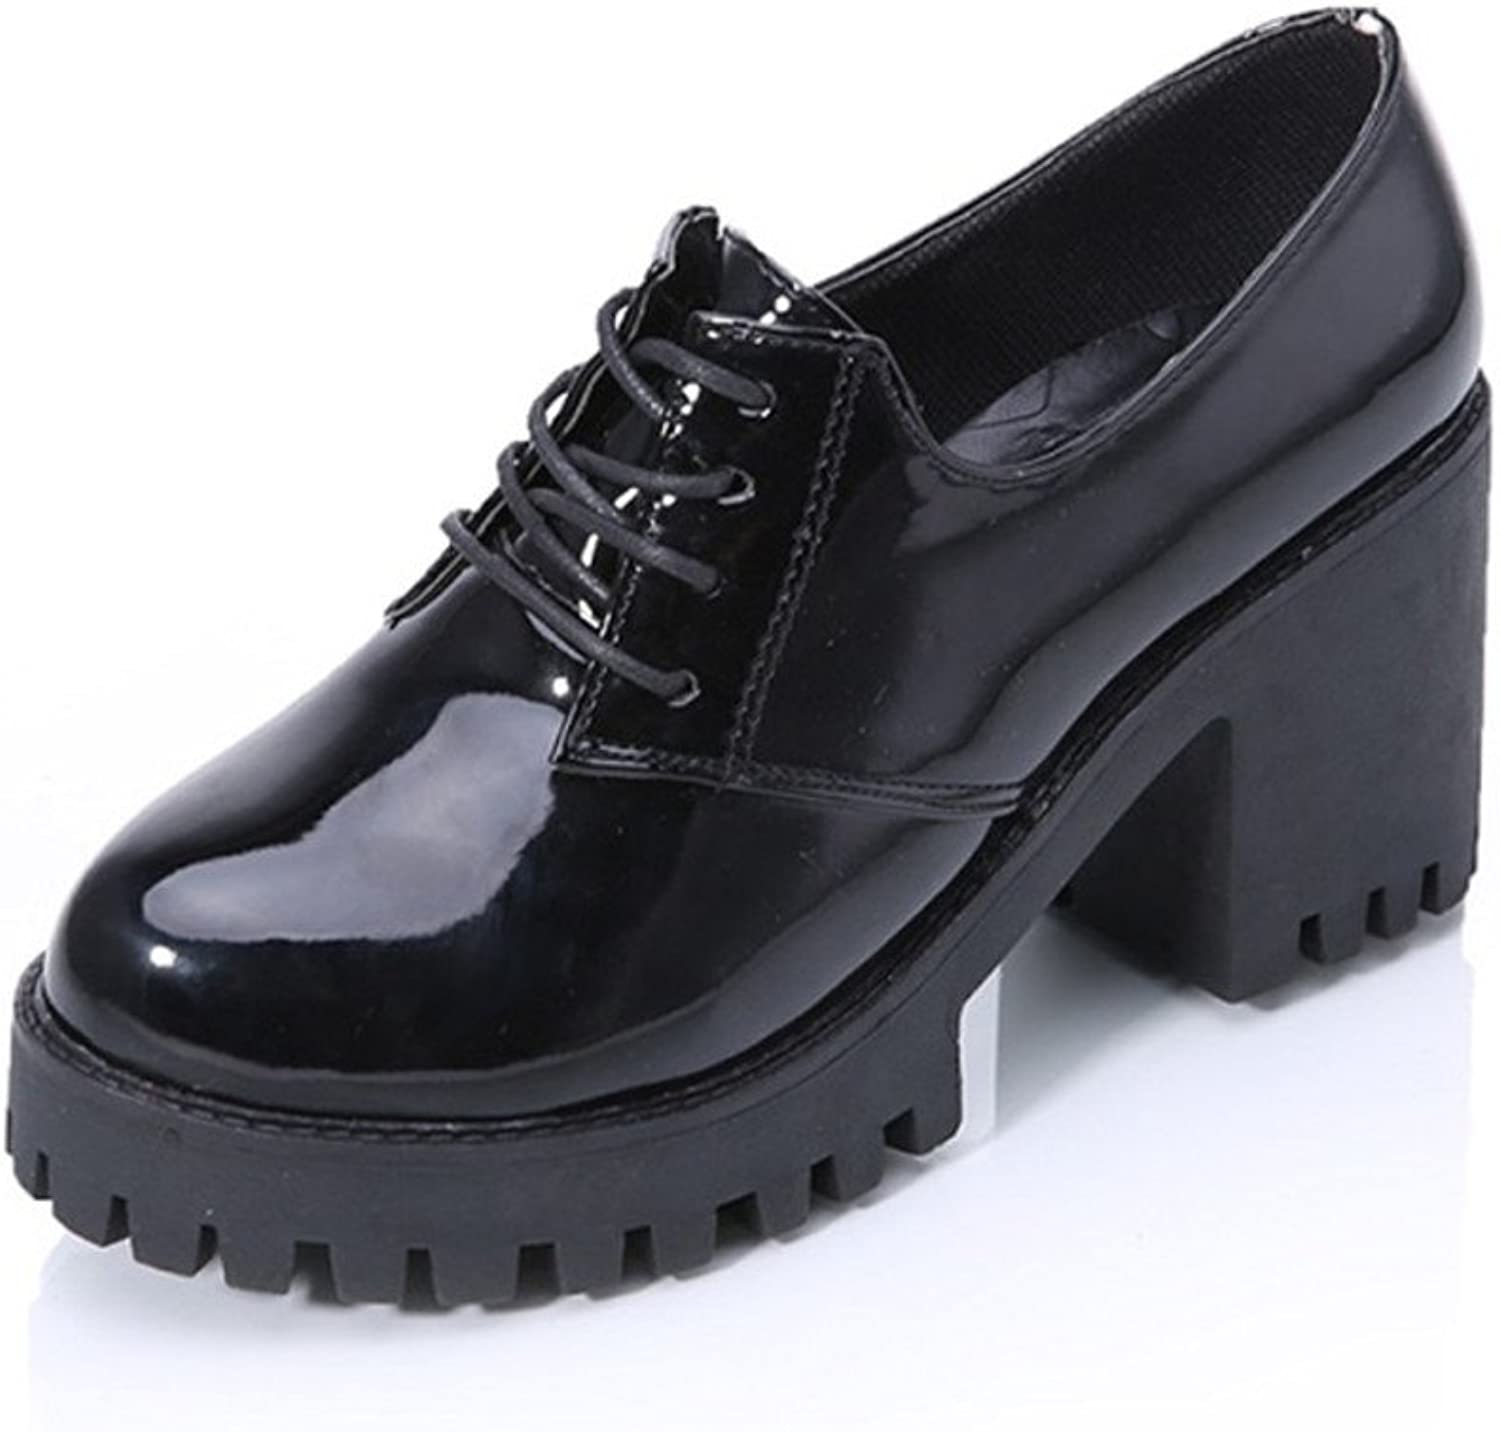 Spring-tie thick-soled platform shoes Rough with high heel leather shoes